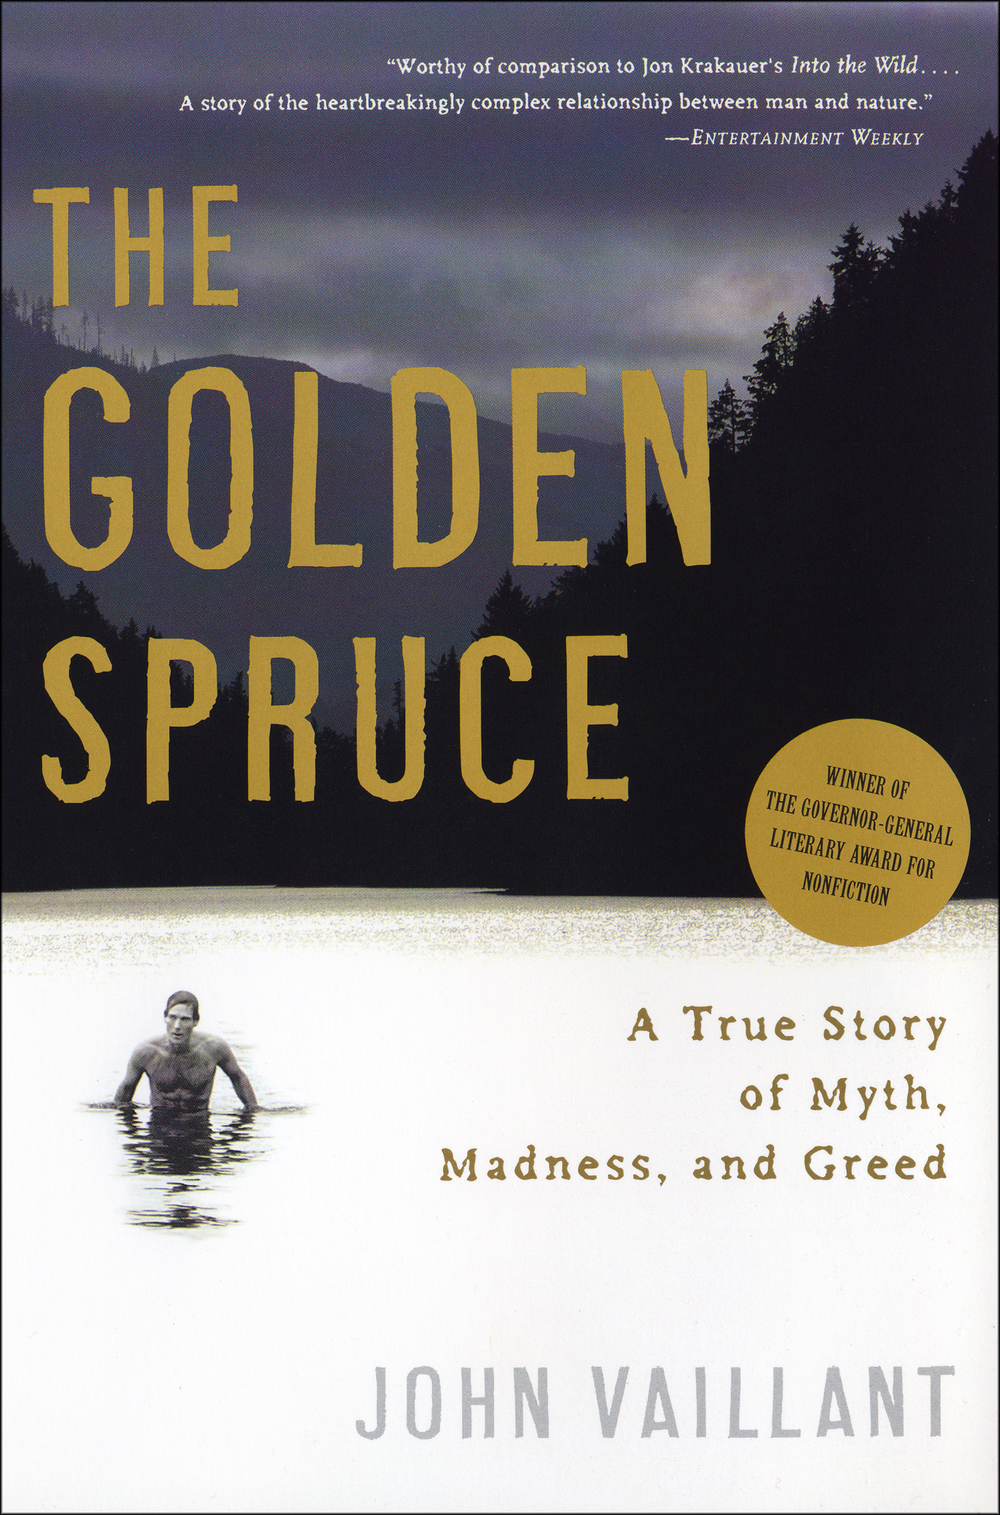 THE-GOLDEN-SPRUCE-tpb-ss6.jpg